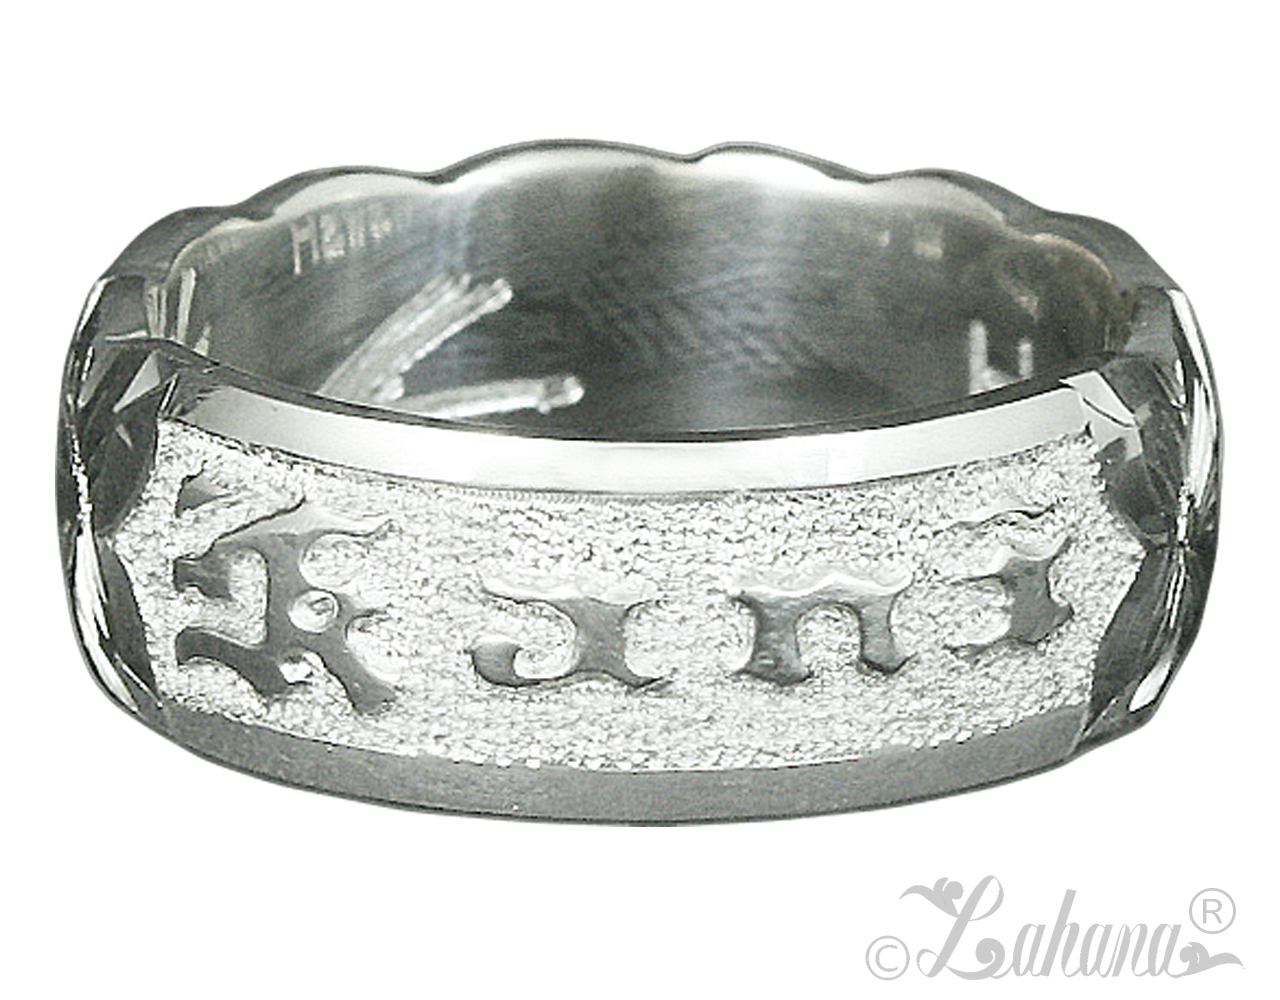 8mm-kani-customized-ring-wm1.jpg